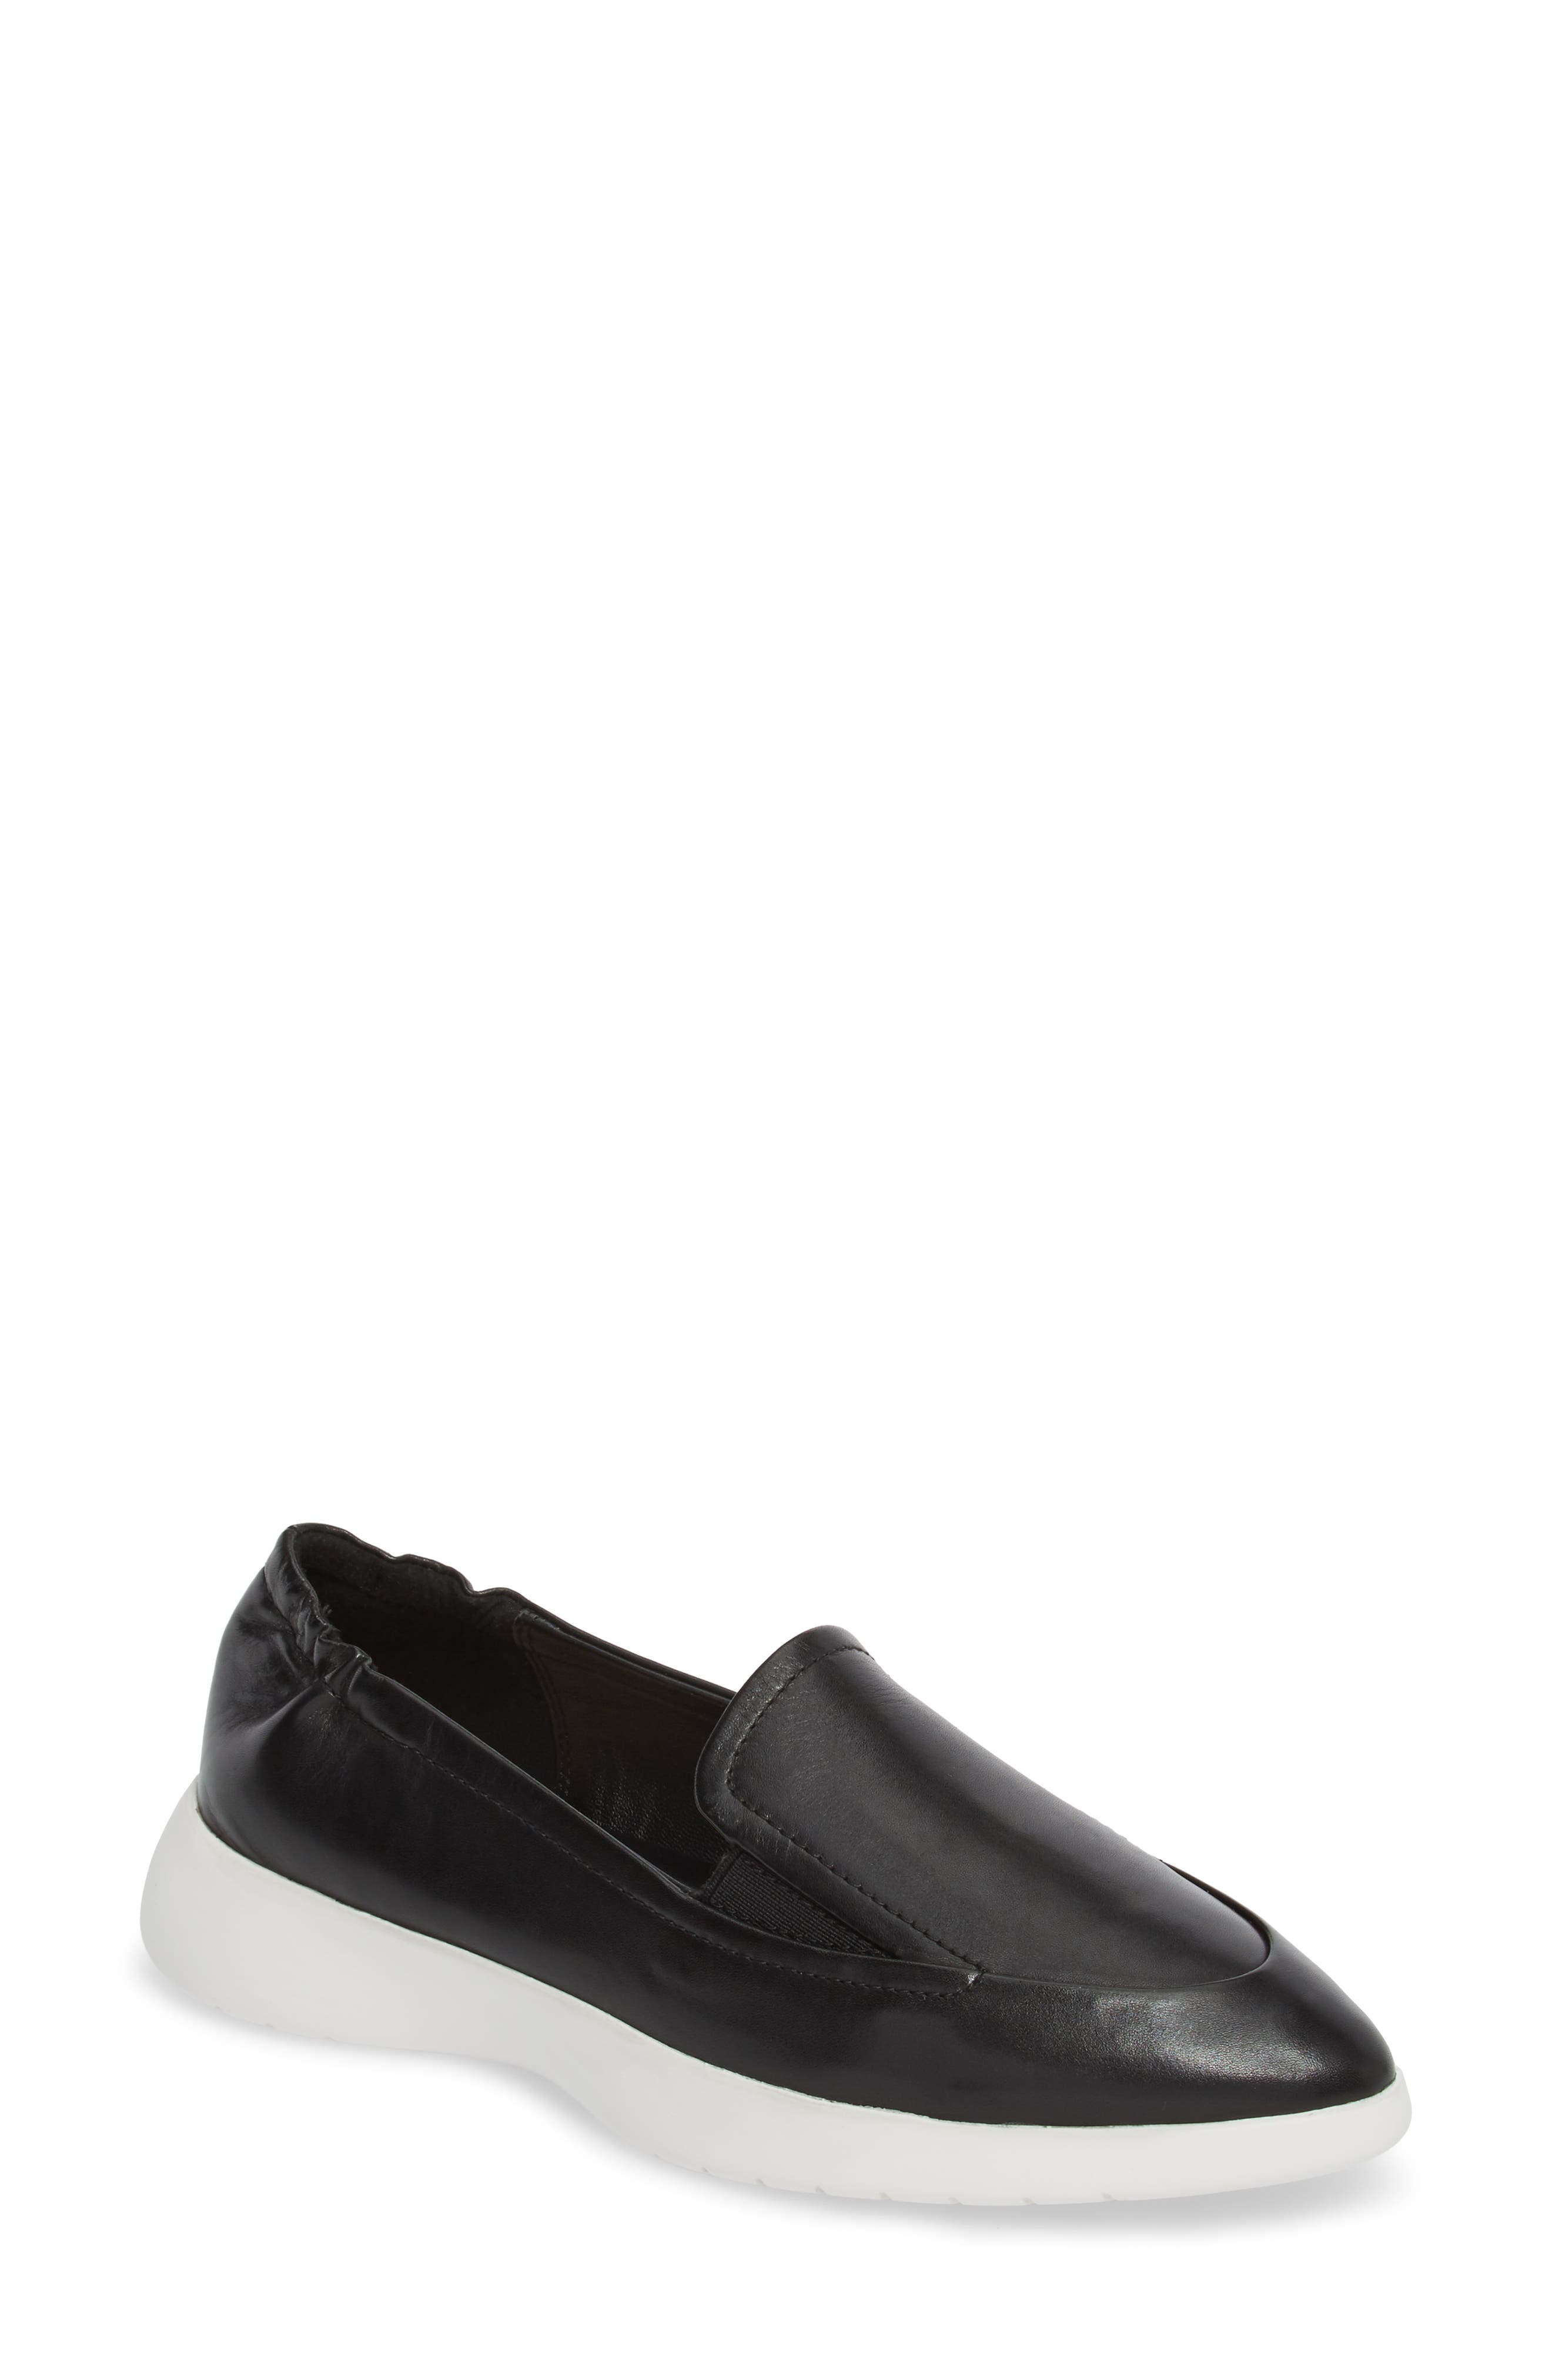 Dana Loafer Sneaker,                             Main thumbnail 1, color,                             Black Leather